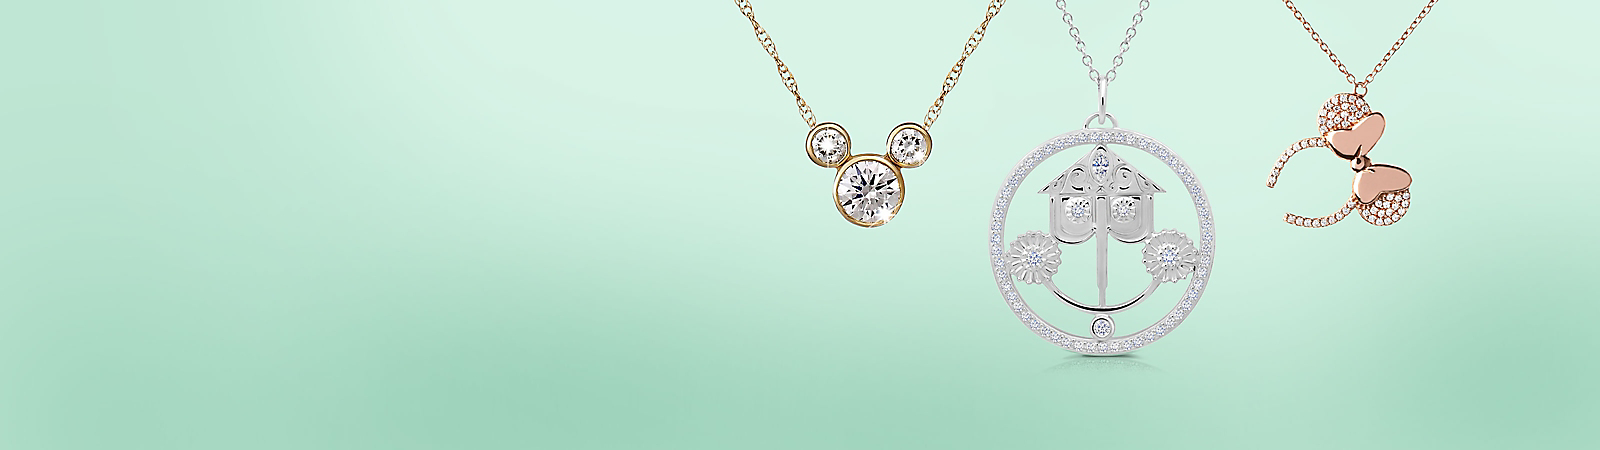 Disney Parks Jewelry Collection